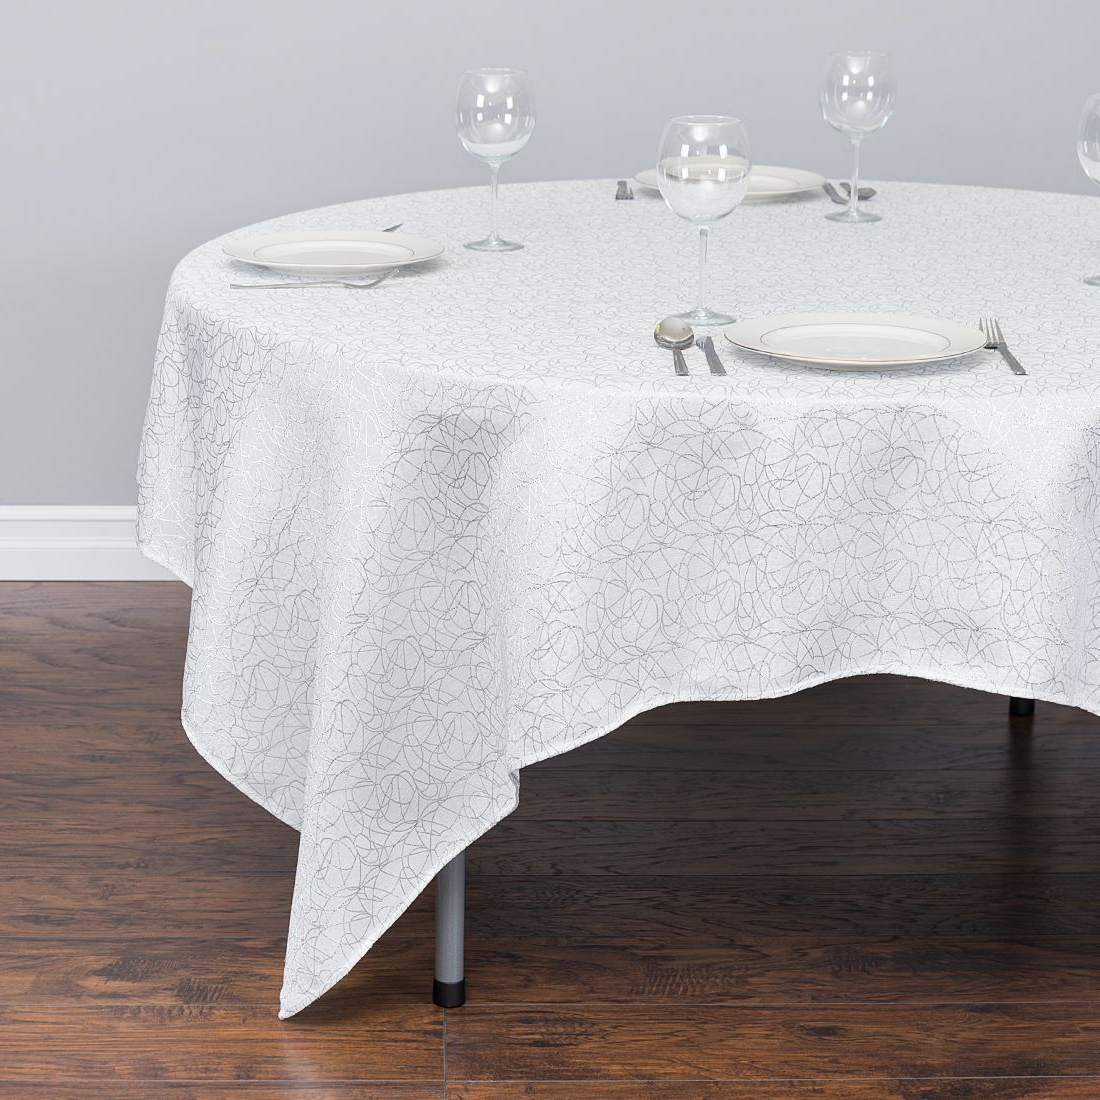 Table Cloth Gdd0 85 In Square Abstract Silk Embroidered Polyester Tablecloth